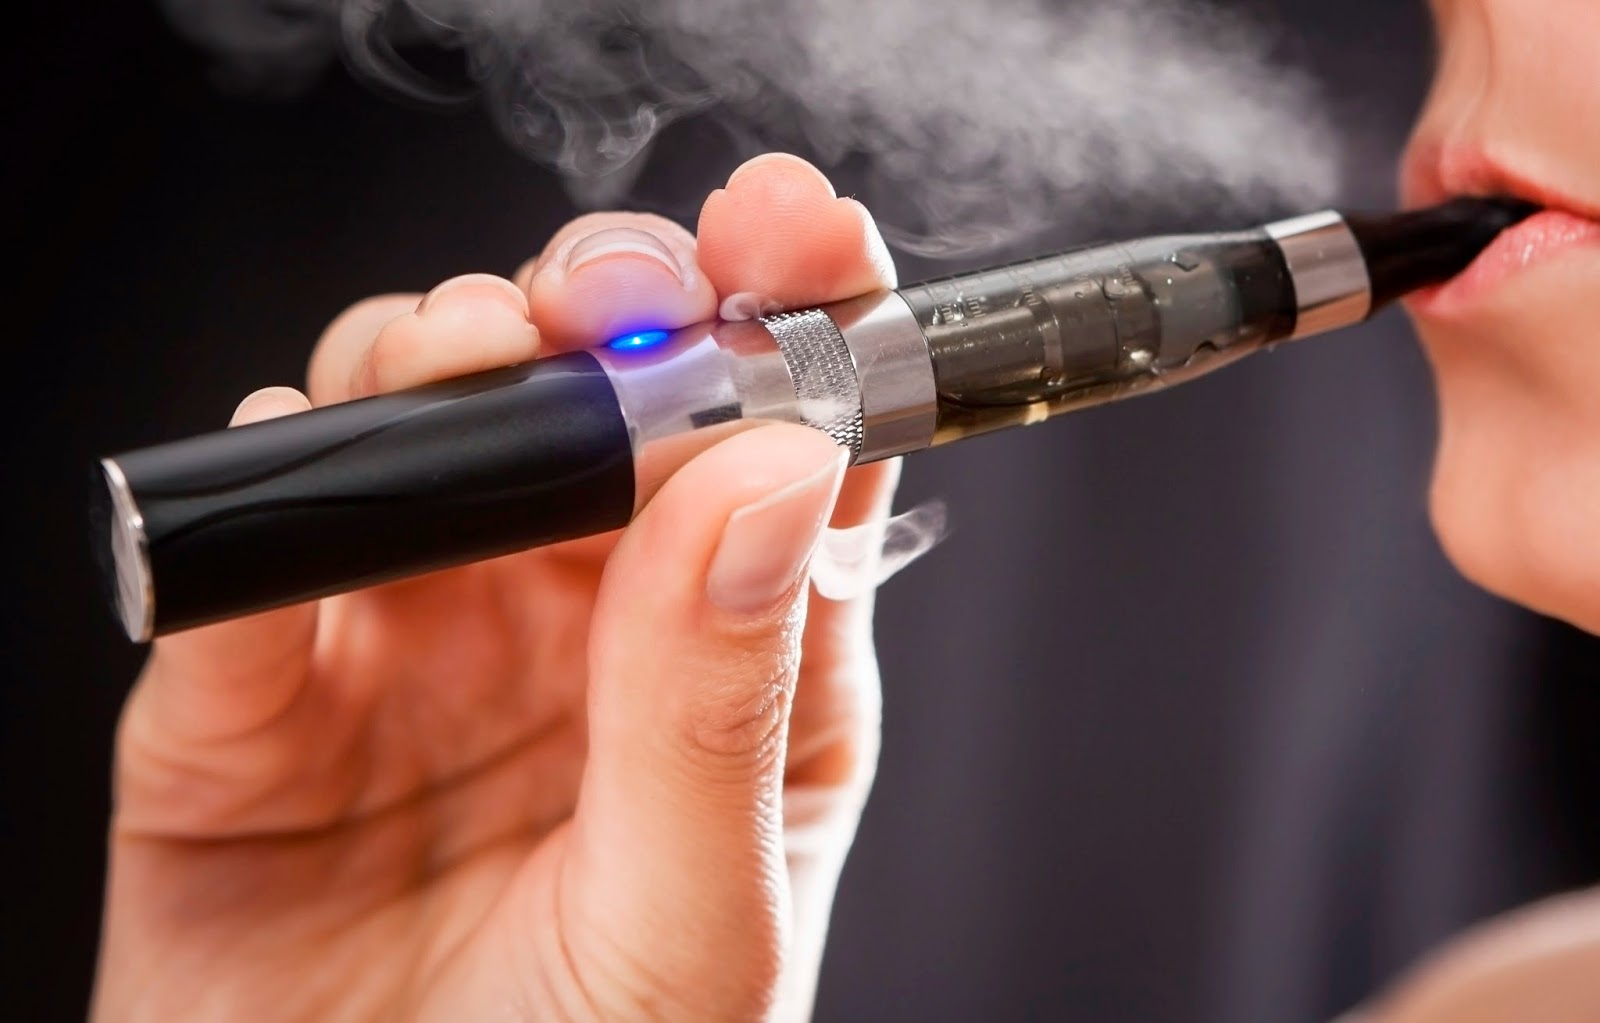 E-Cigarette banned from MAS check-in baggage